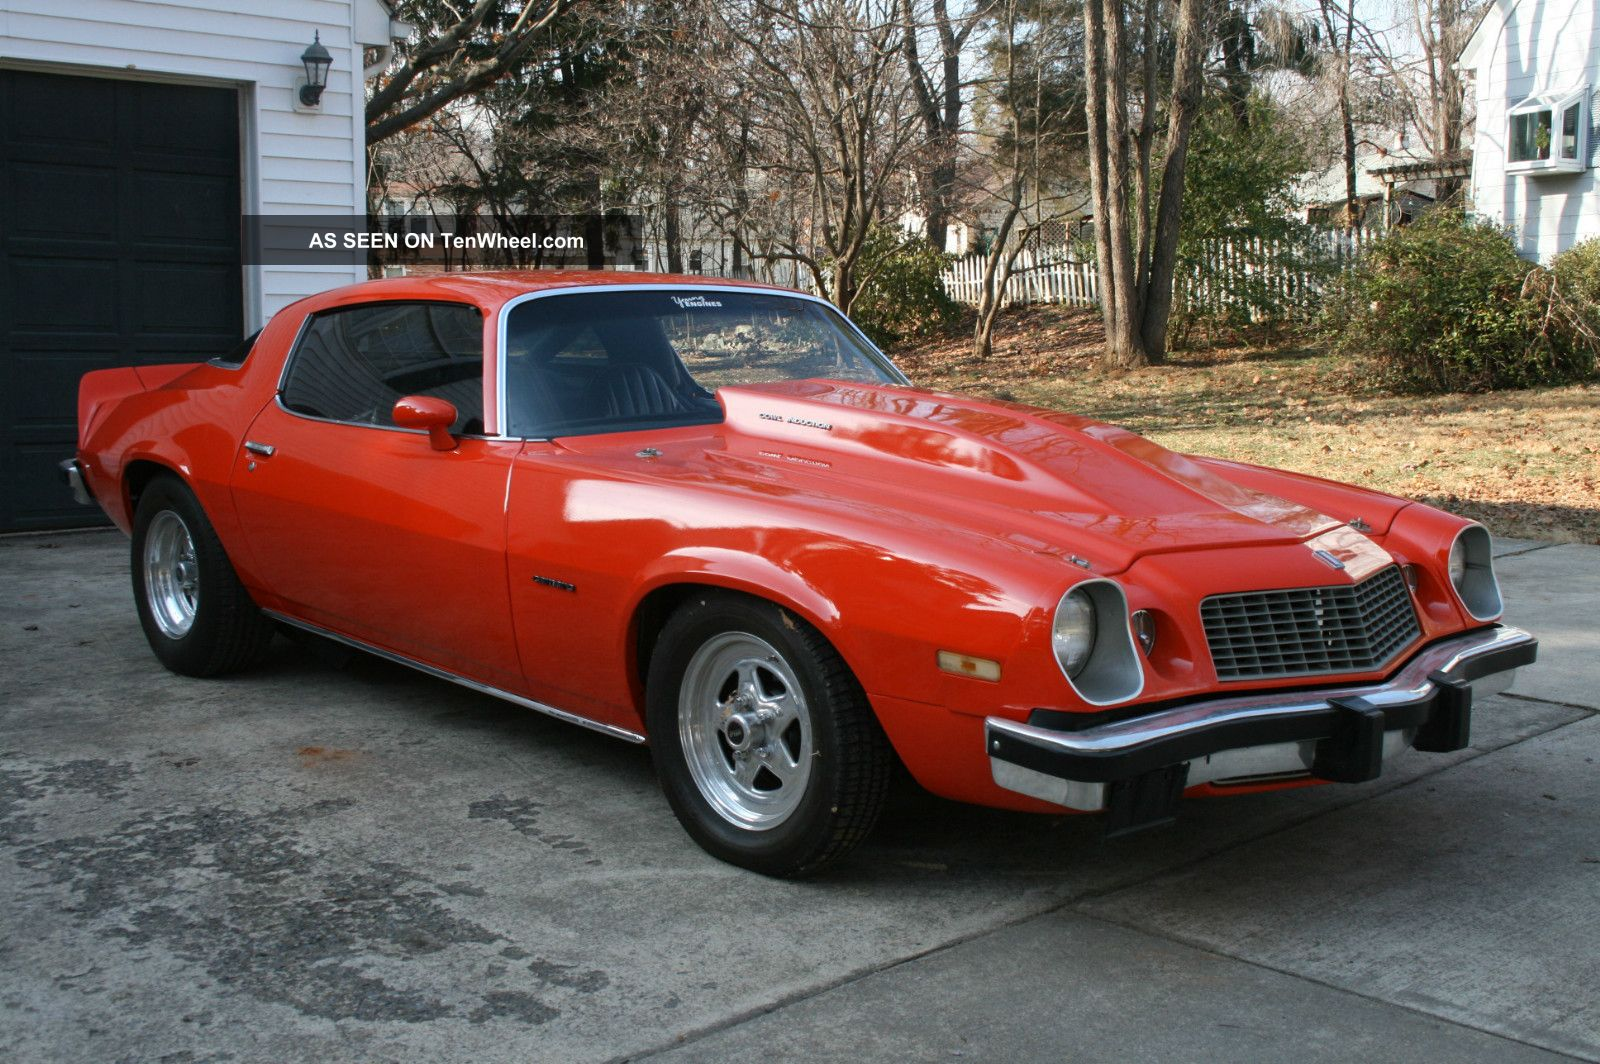 1975 Chevrolet Camaro Drag Street Car 421 Stroker Motor Professionally Built